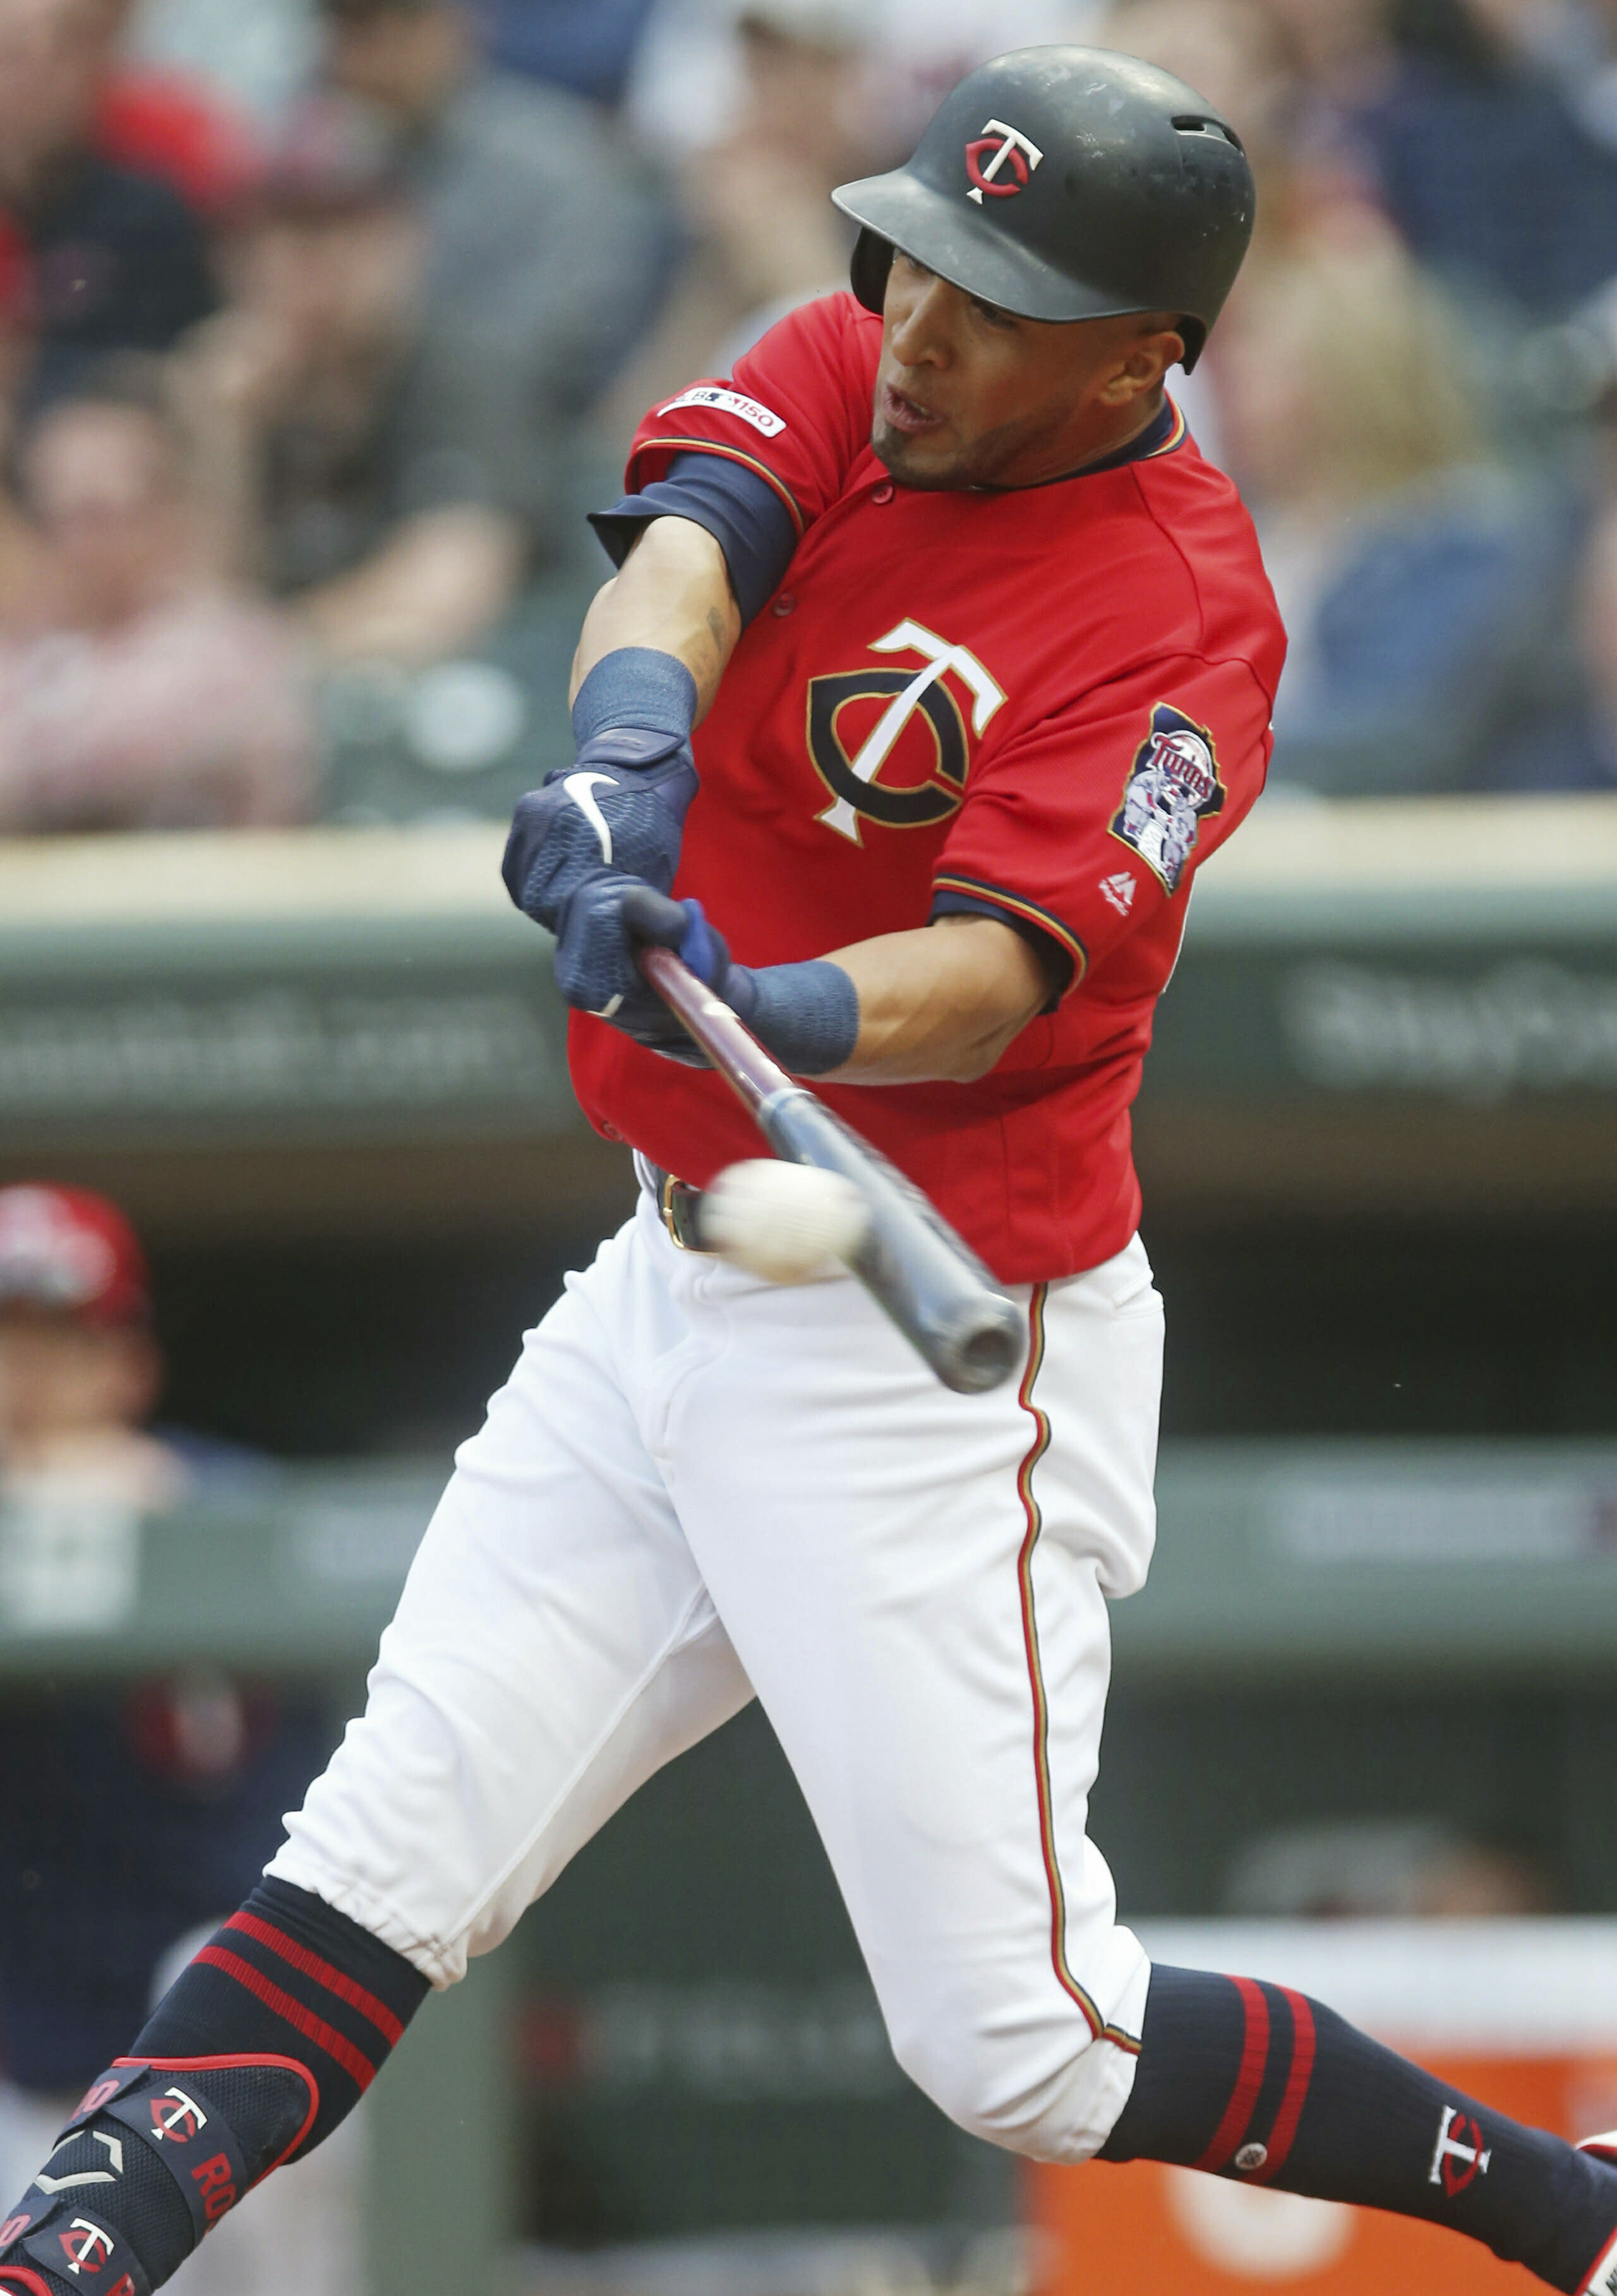 Minnesota Twins' Eddie Rosario hits an RBI single off Los Angeles Angels pitcher Cam Bedrosian in the first inning of a baseball game Tuesday, May 14, 2019, in Minneapolis. (AP Photo/Jim Mone)